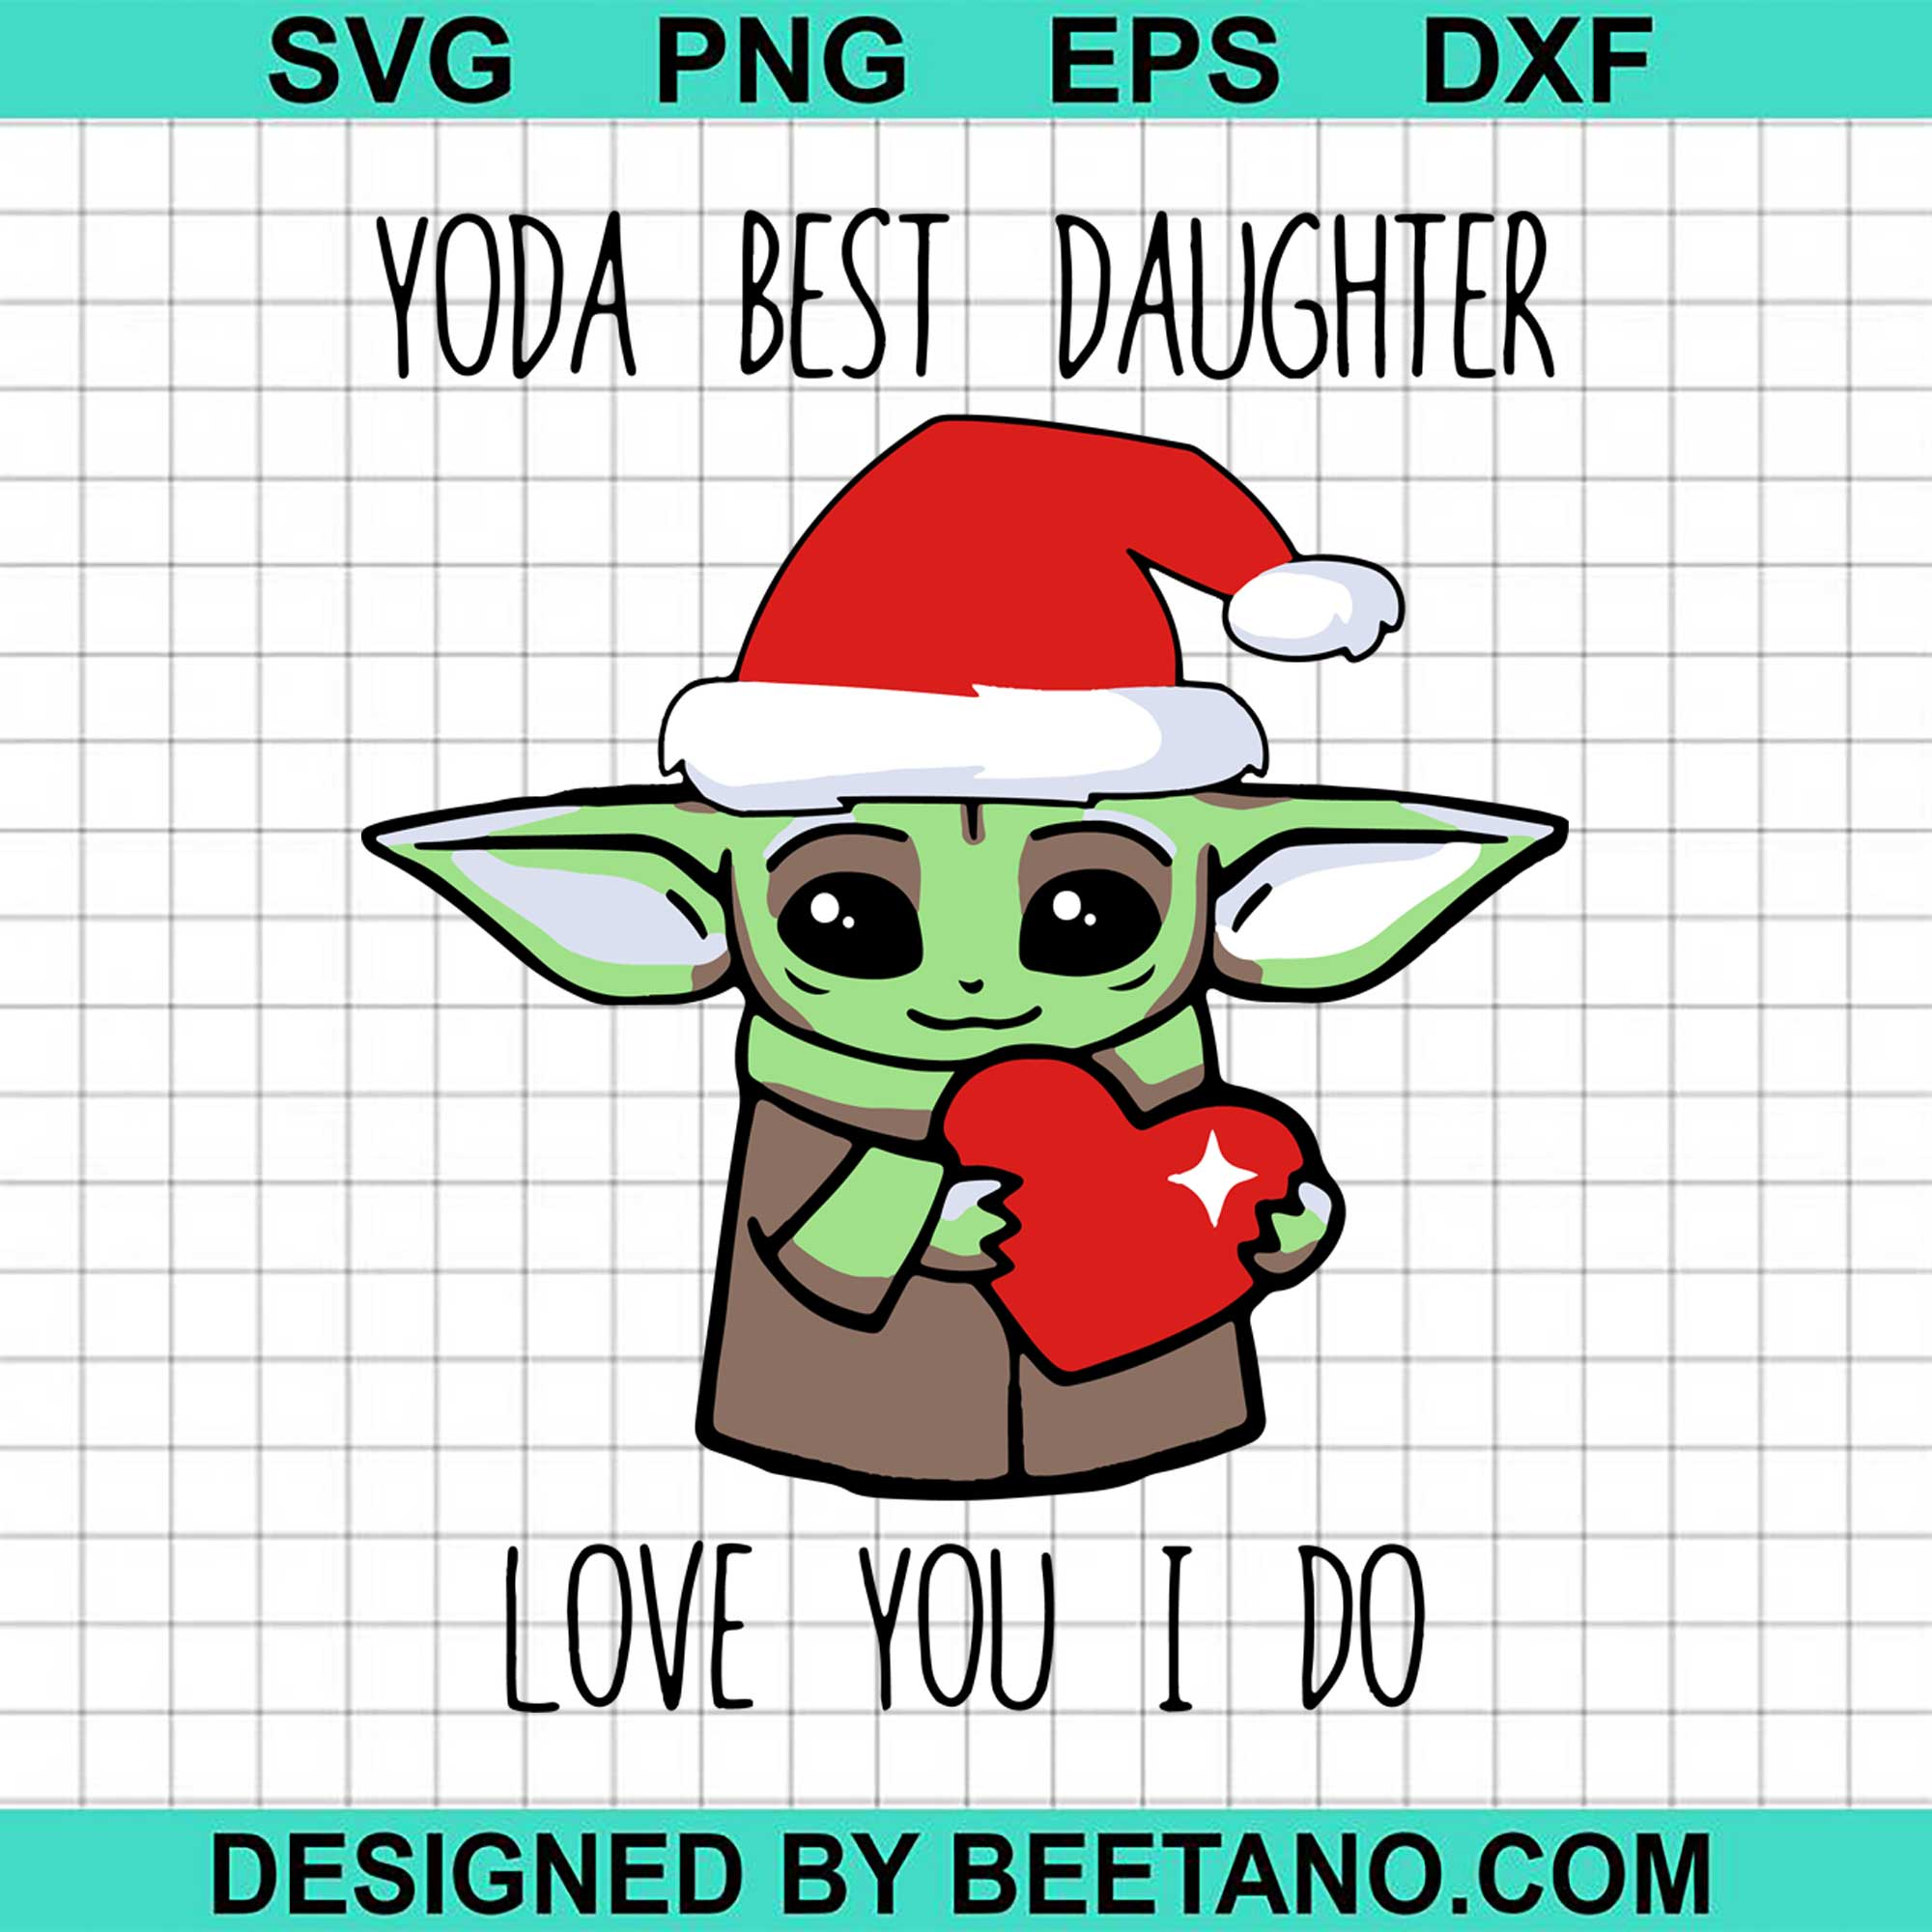 Free In this video, i'll be showing you how to create this super cool father's day art using card stock and cricut. The Mandalorian Baby Yoda Best Daughter Love You I Do Christmas 2020 S Beetanosvg Scalable Vector Graphics SVG, PNG, EPS, DXF File